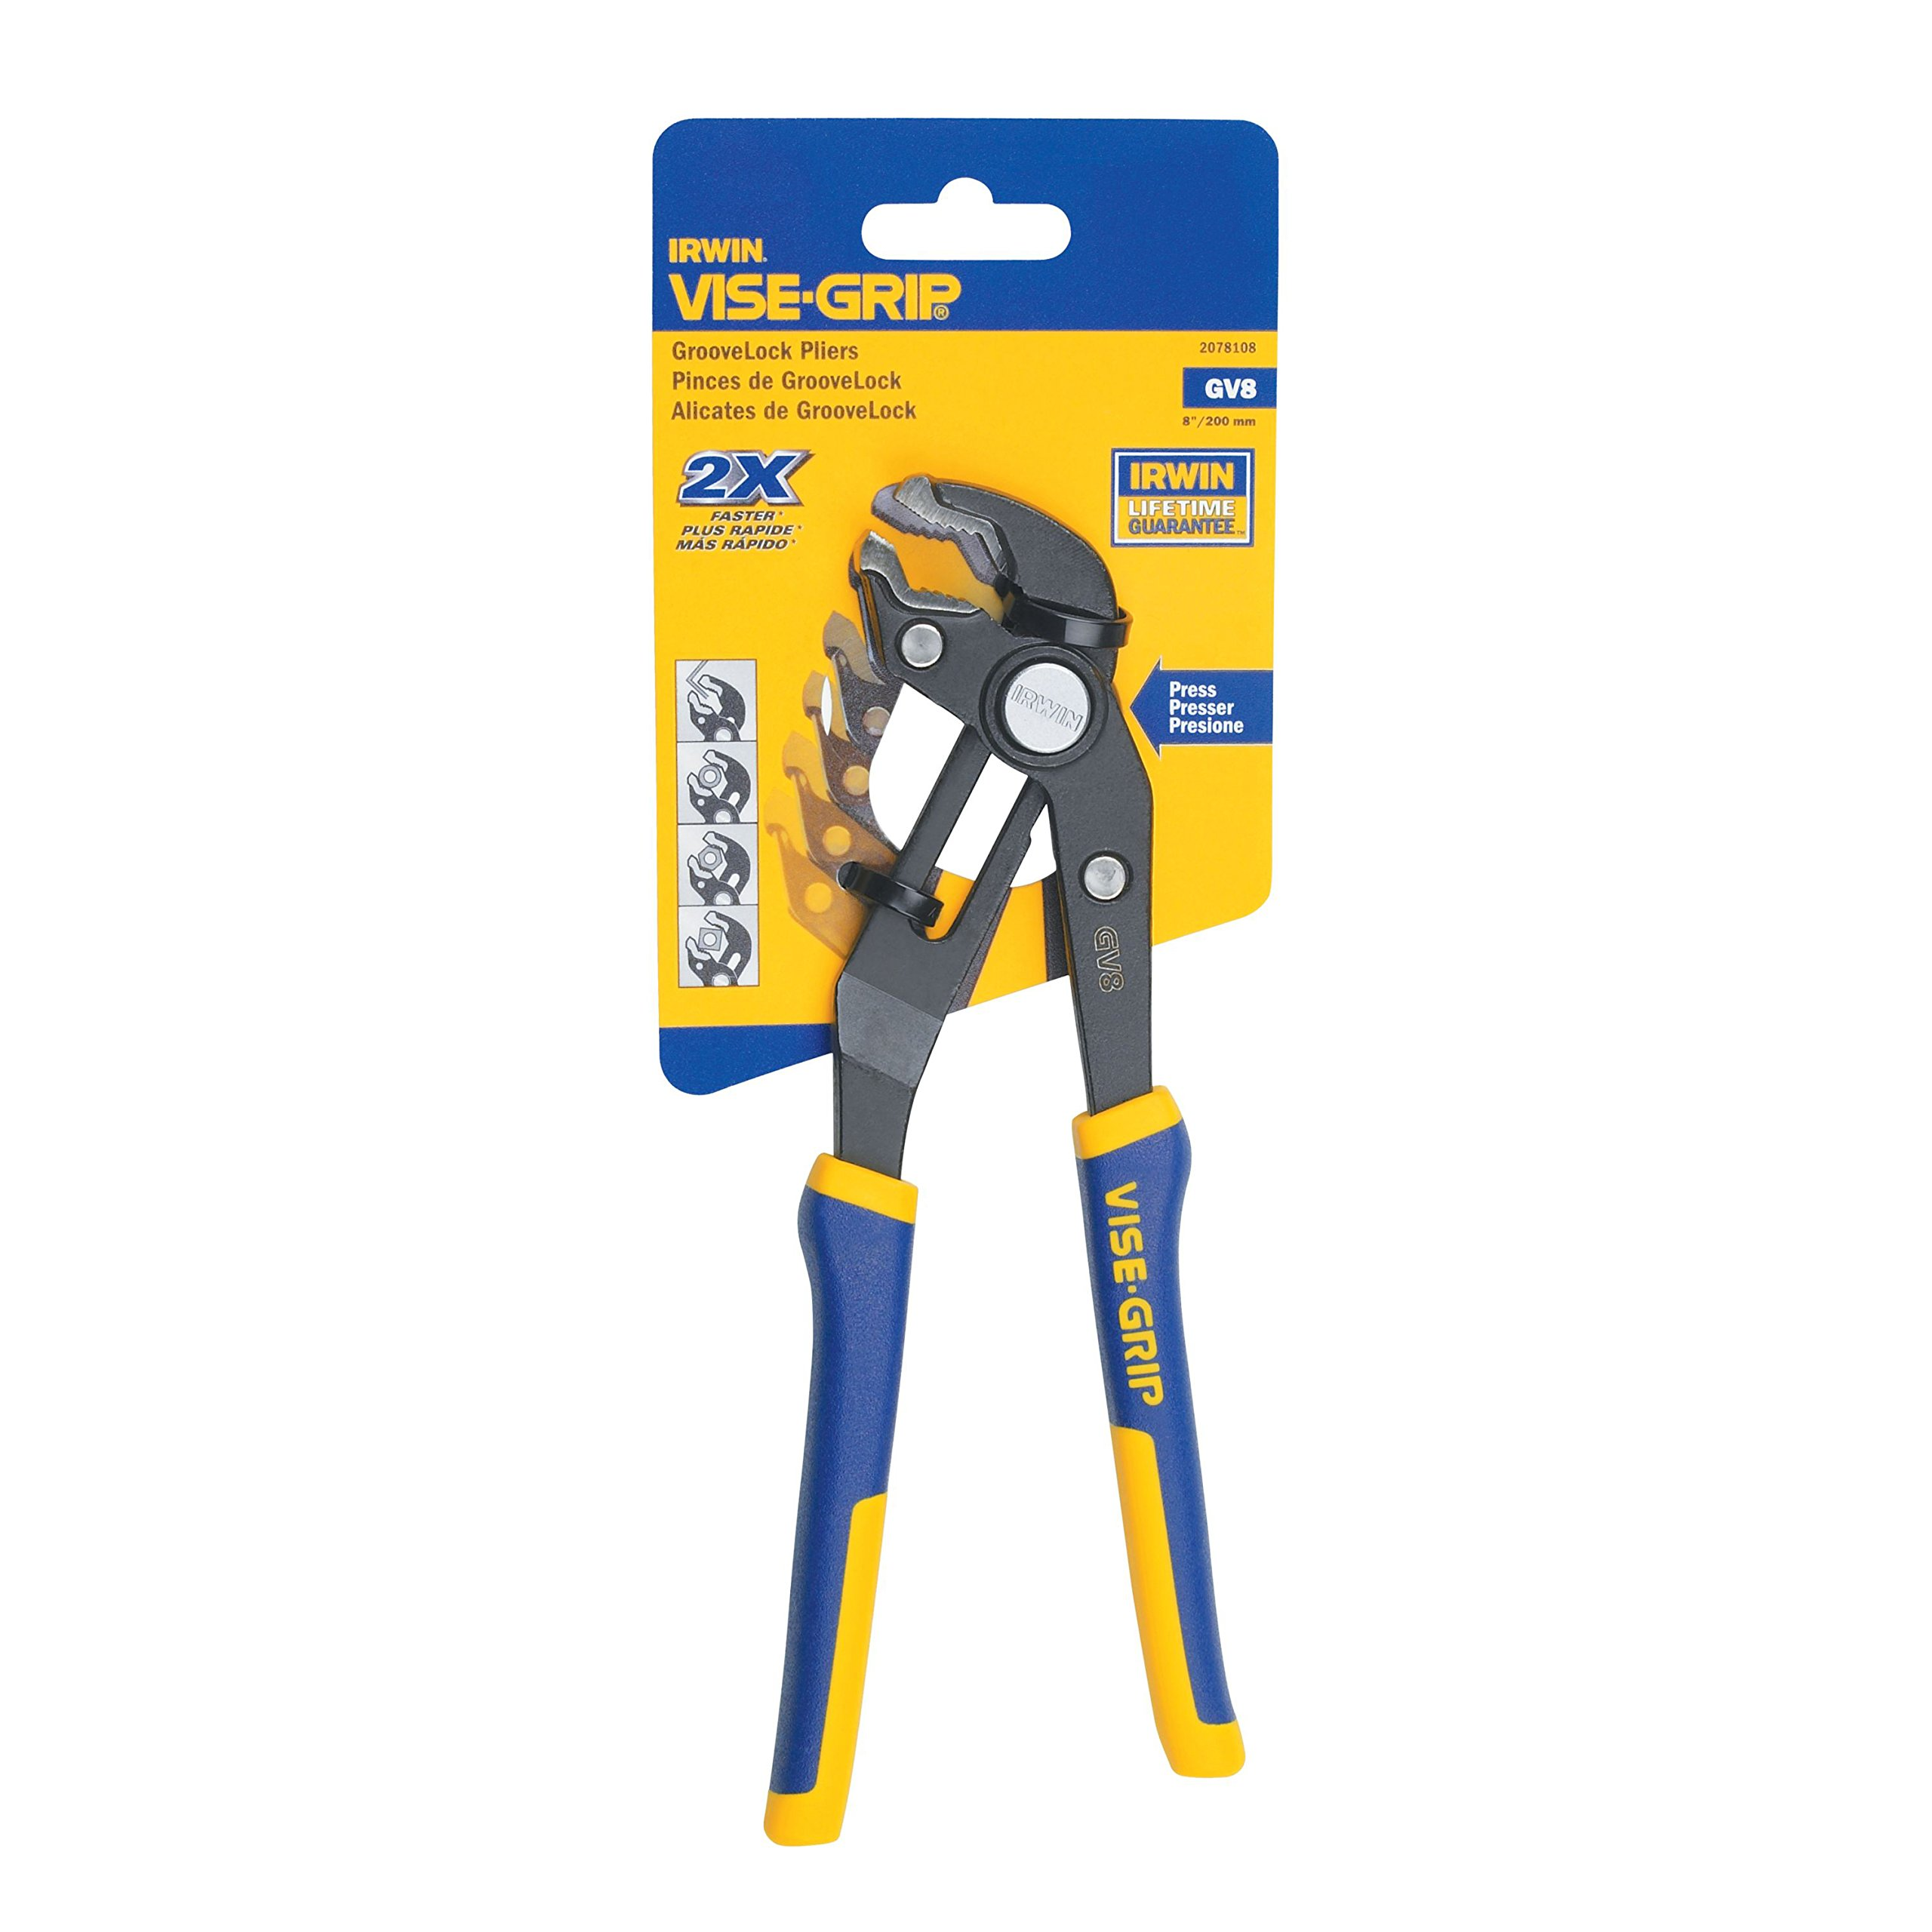 IRWIN VISE-GRIP GrooveLock V-Jaw Pliers, 8-Inch, 2078108